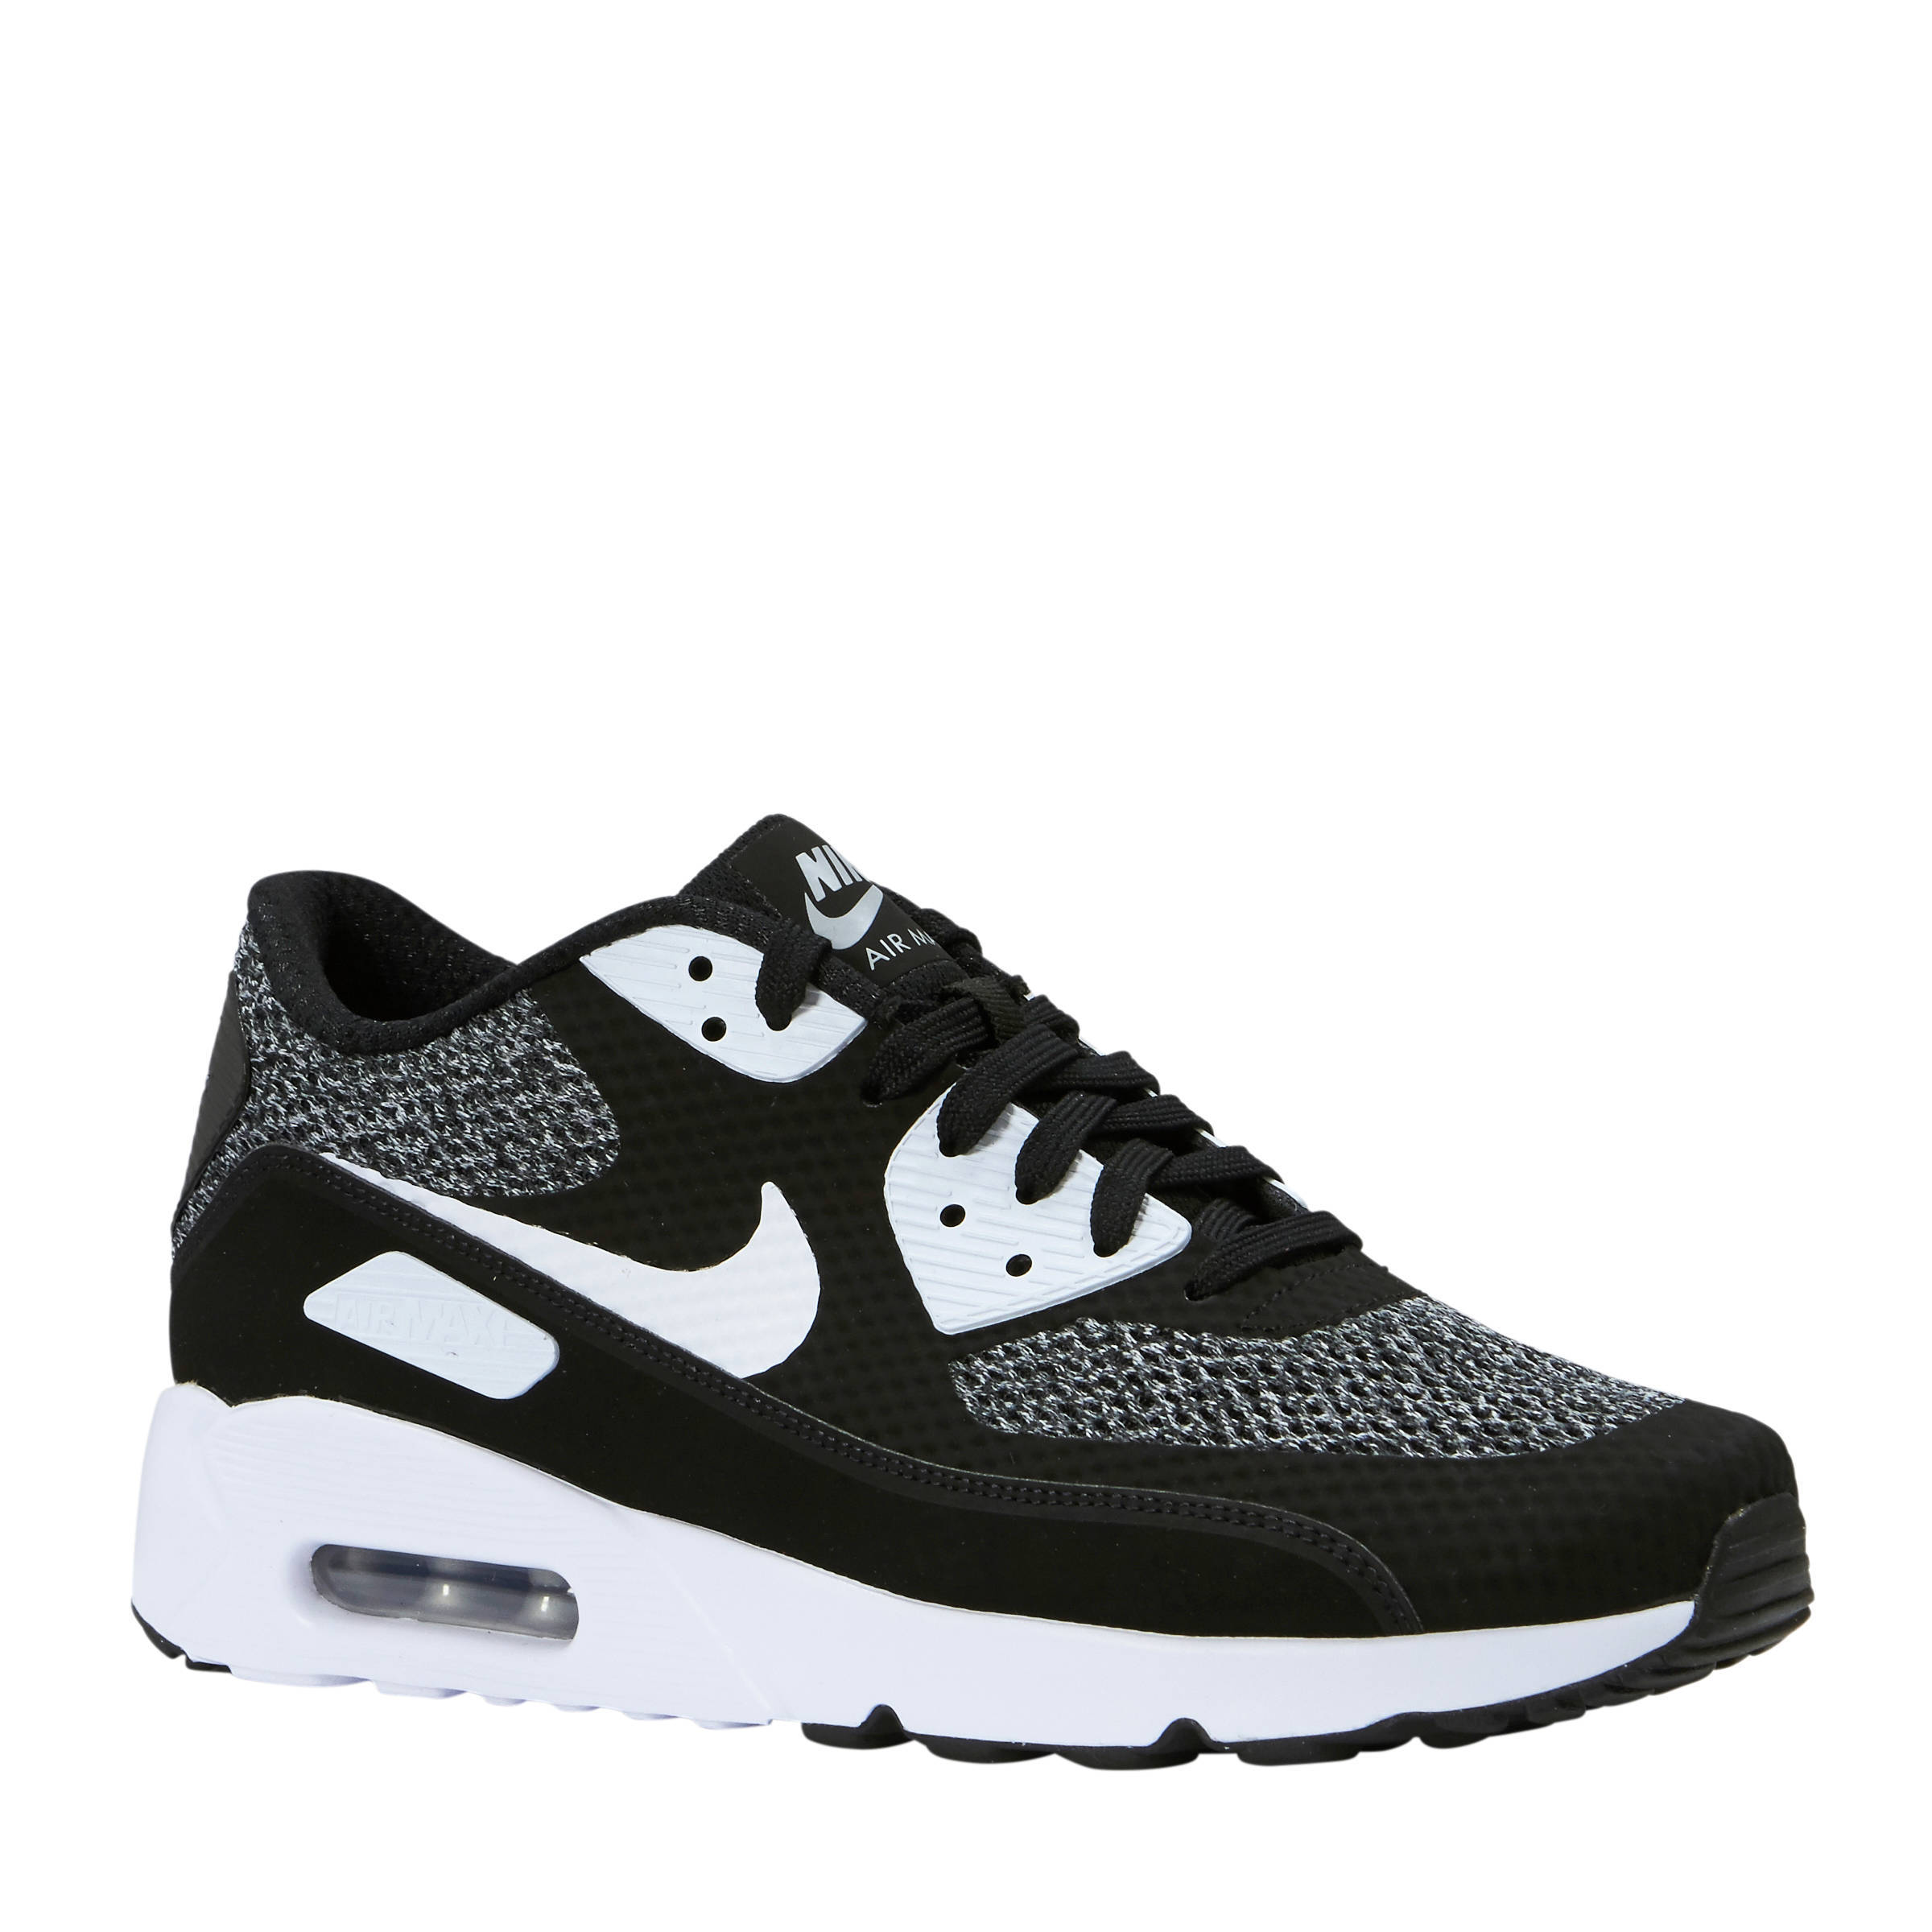 e23a4e38b1 nike-air-max-90-ultra-2-0-essential-sneakers-zwart-0884499605652.jpg